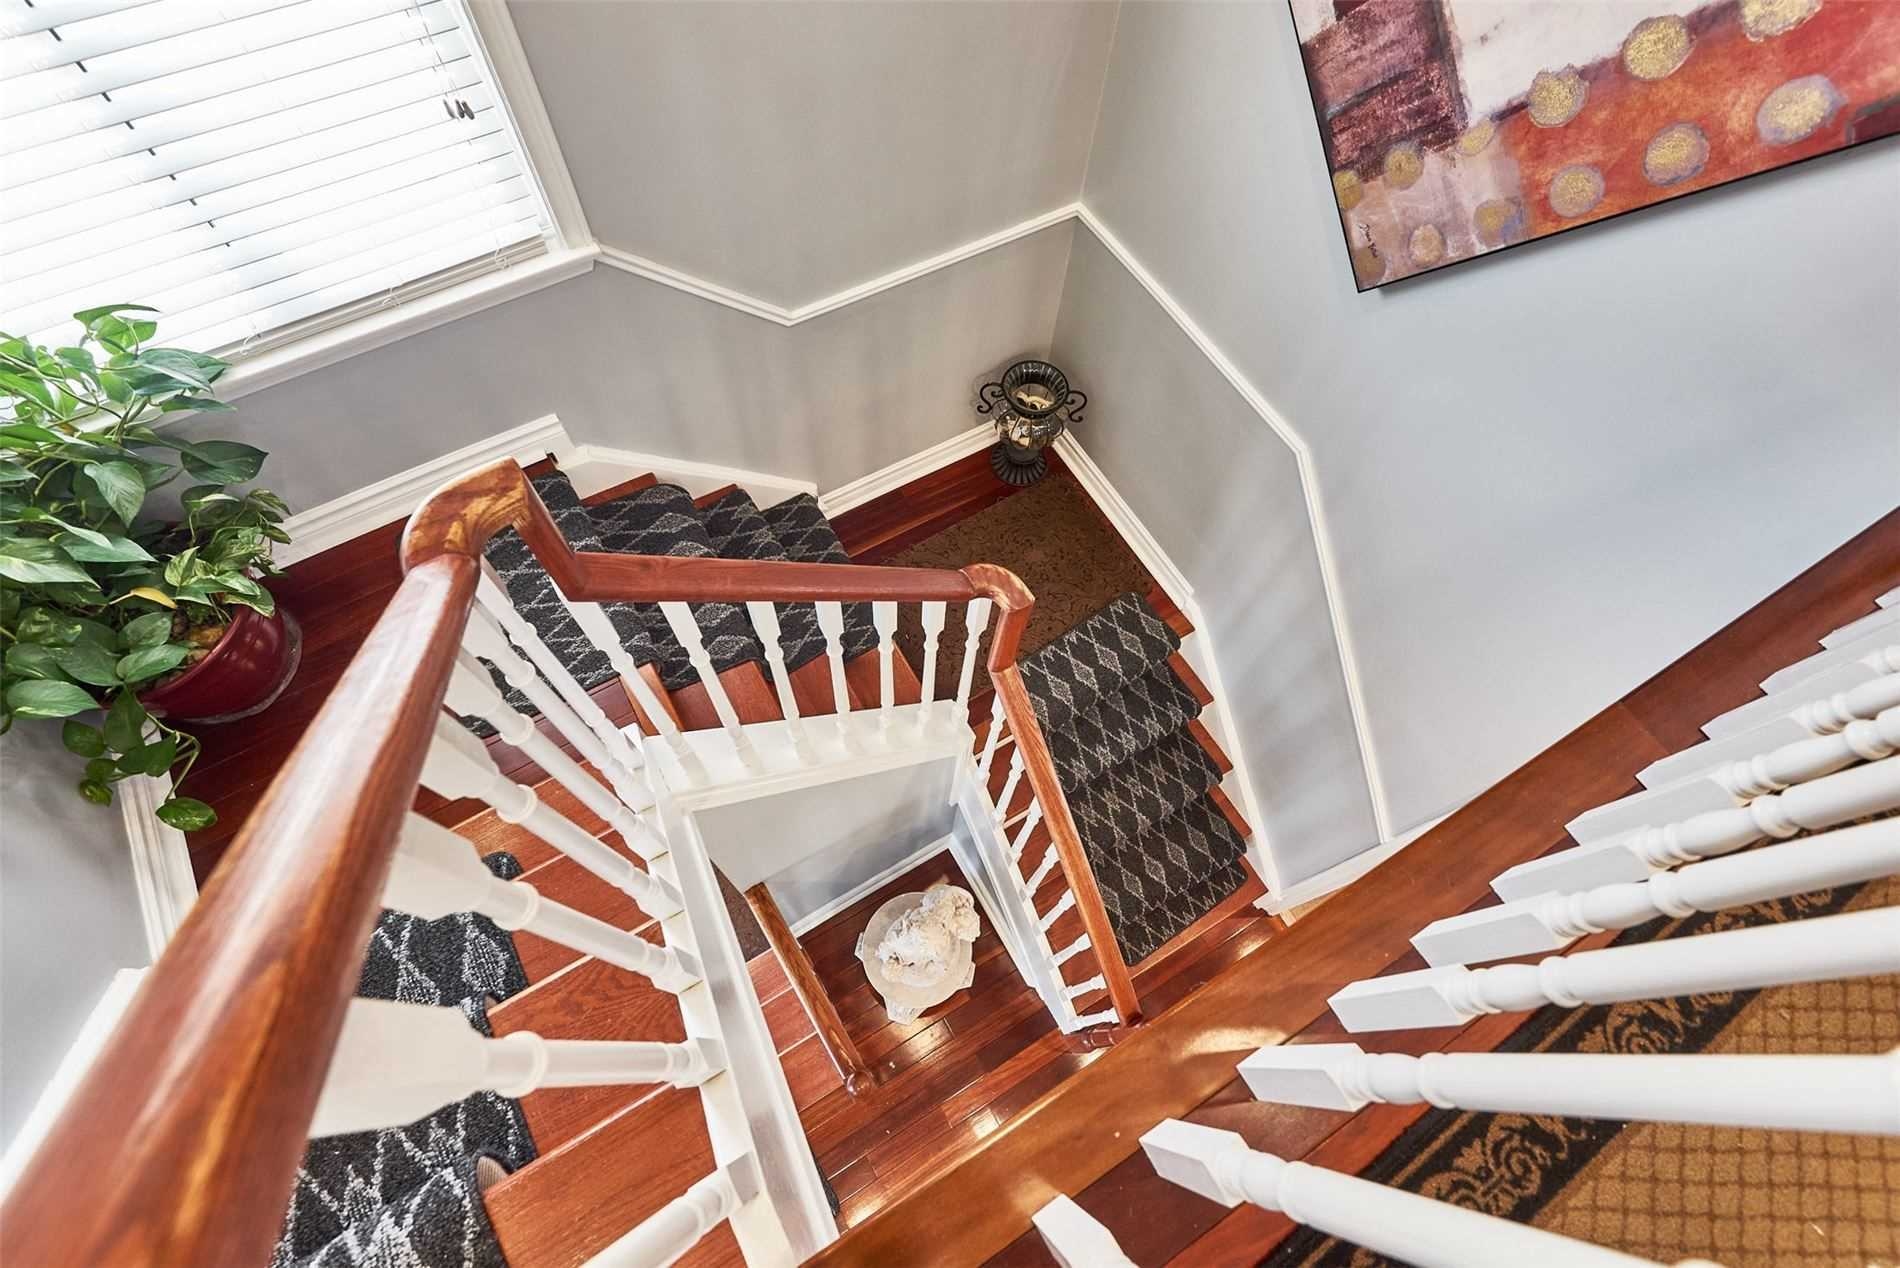 Image 8 of 33 showing inside of 3 Bedroom Condo Townhouse 2-Storey for Sale at 33 Clover Ridge Dr W Unit# 9, Ajax L1S3M5